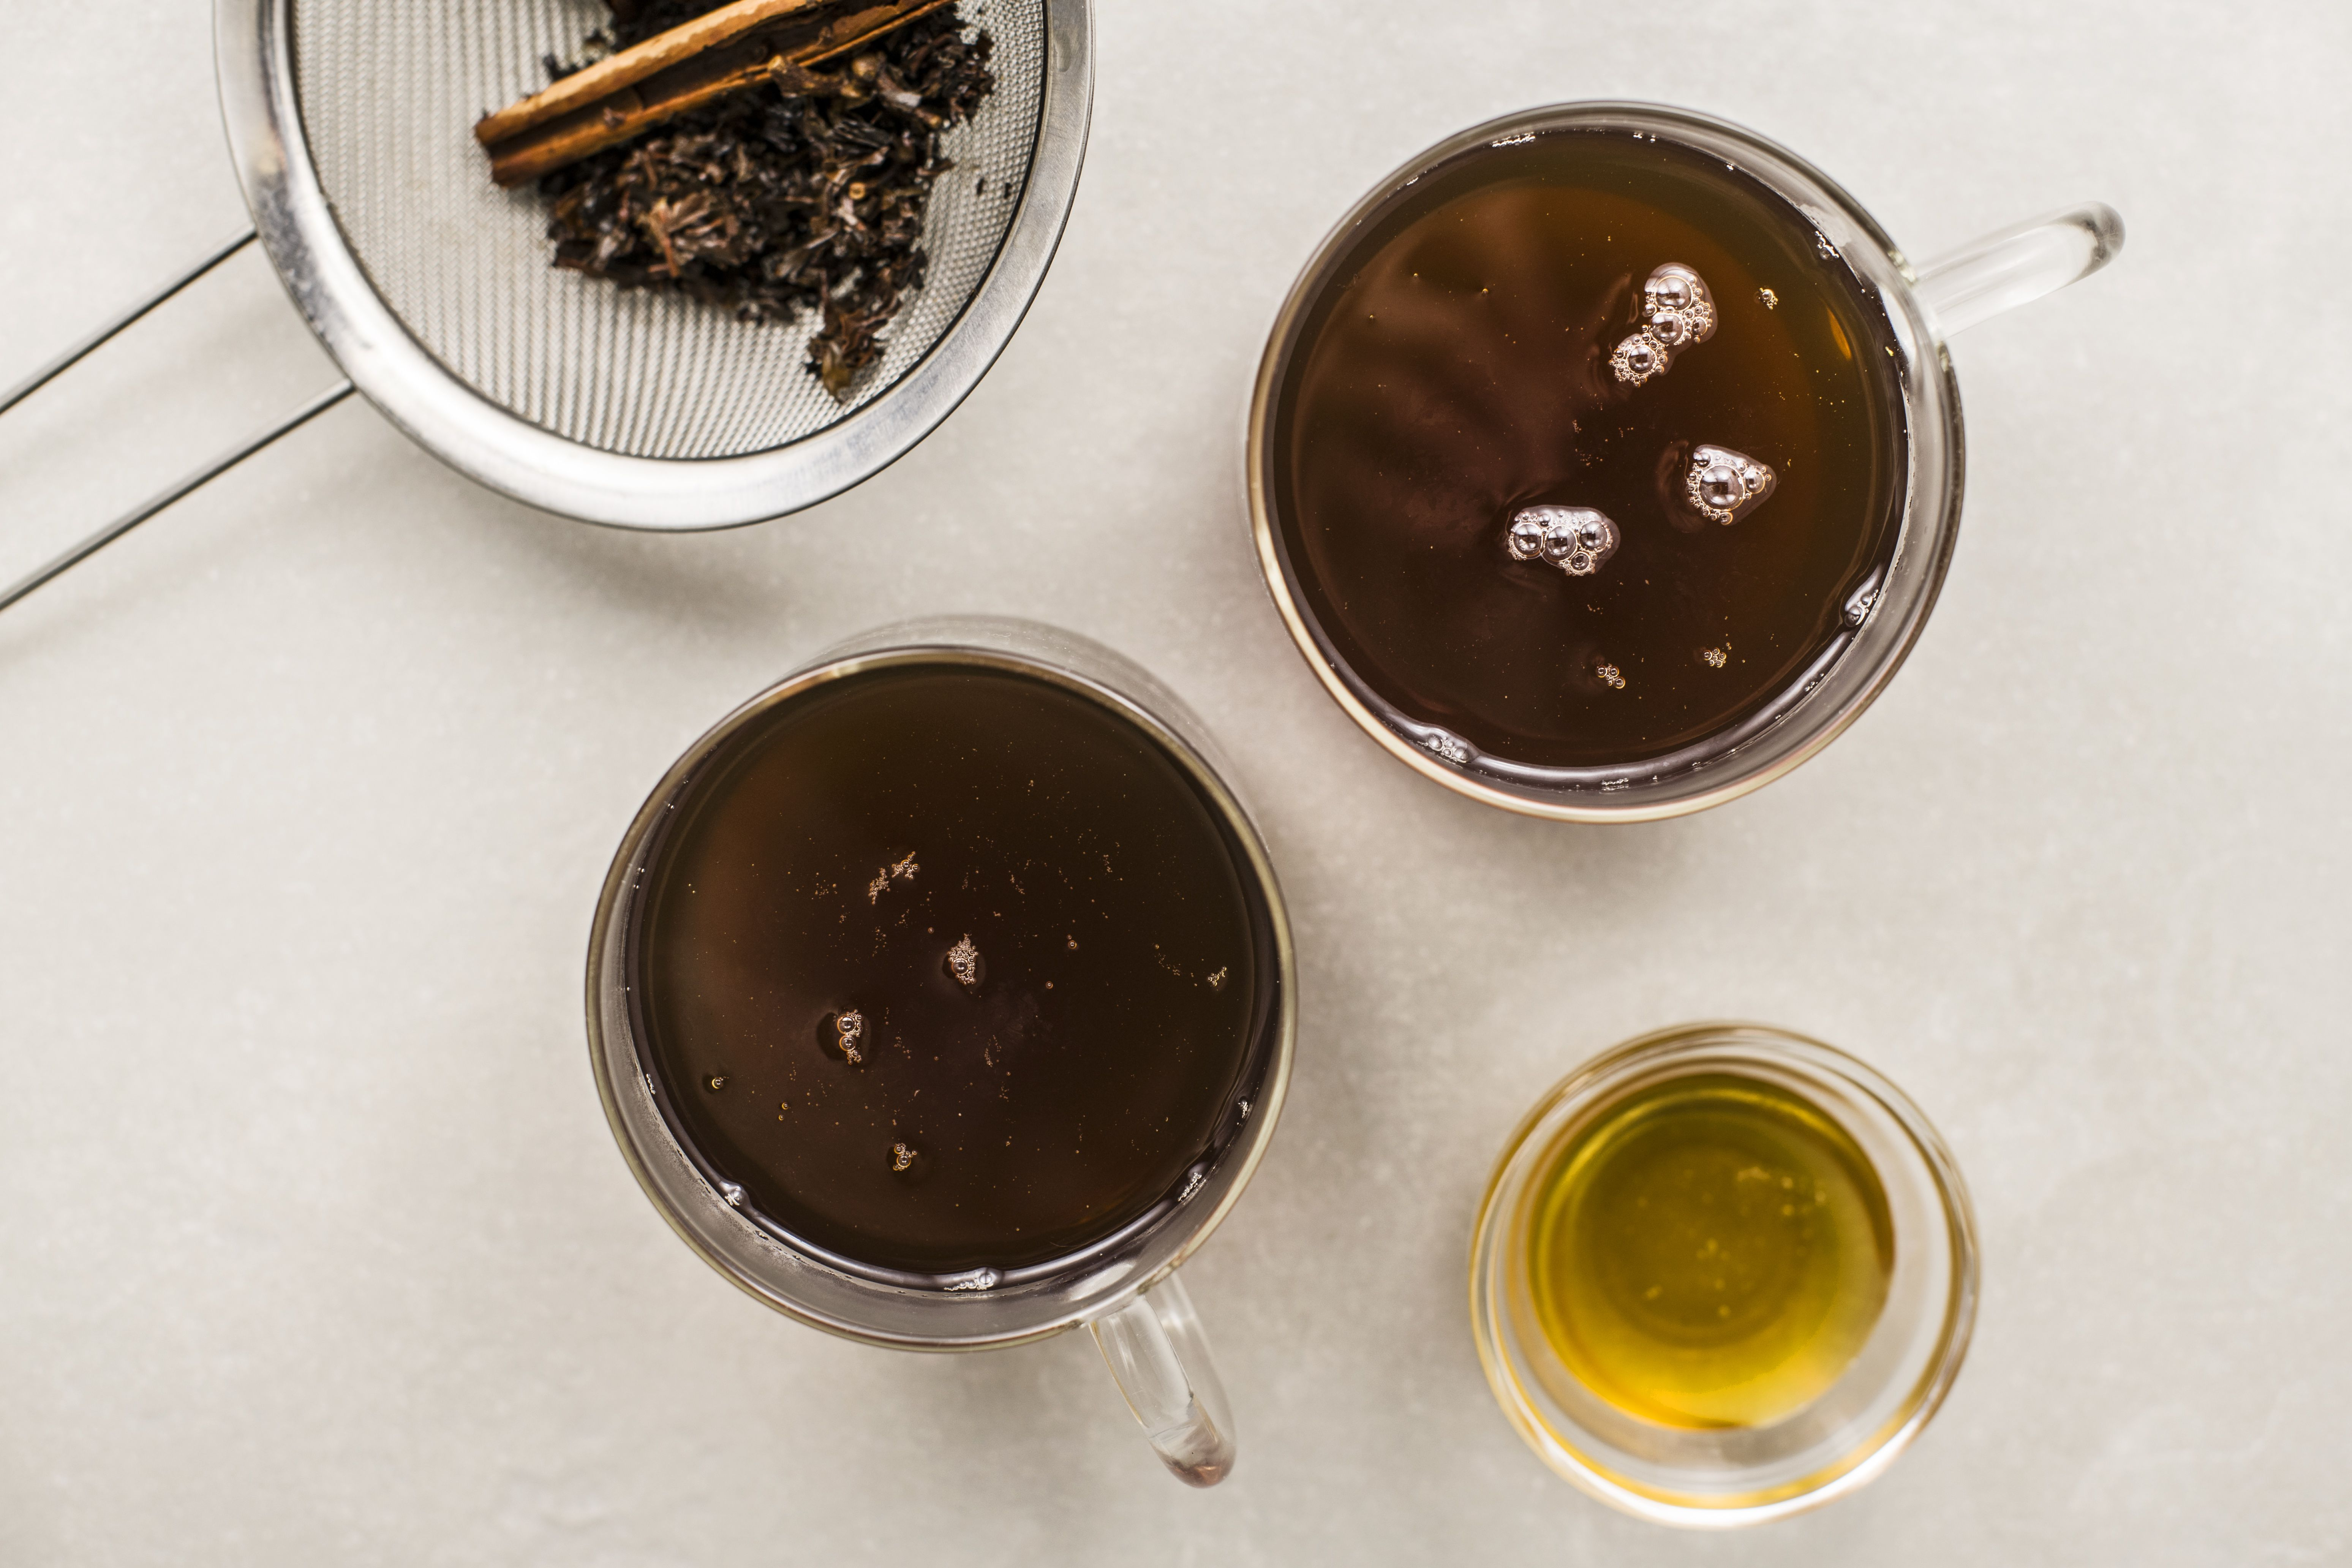 Tea strained with two mugs of tea and honey